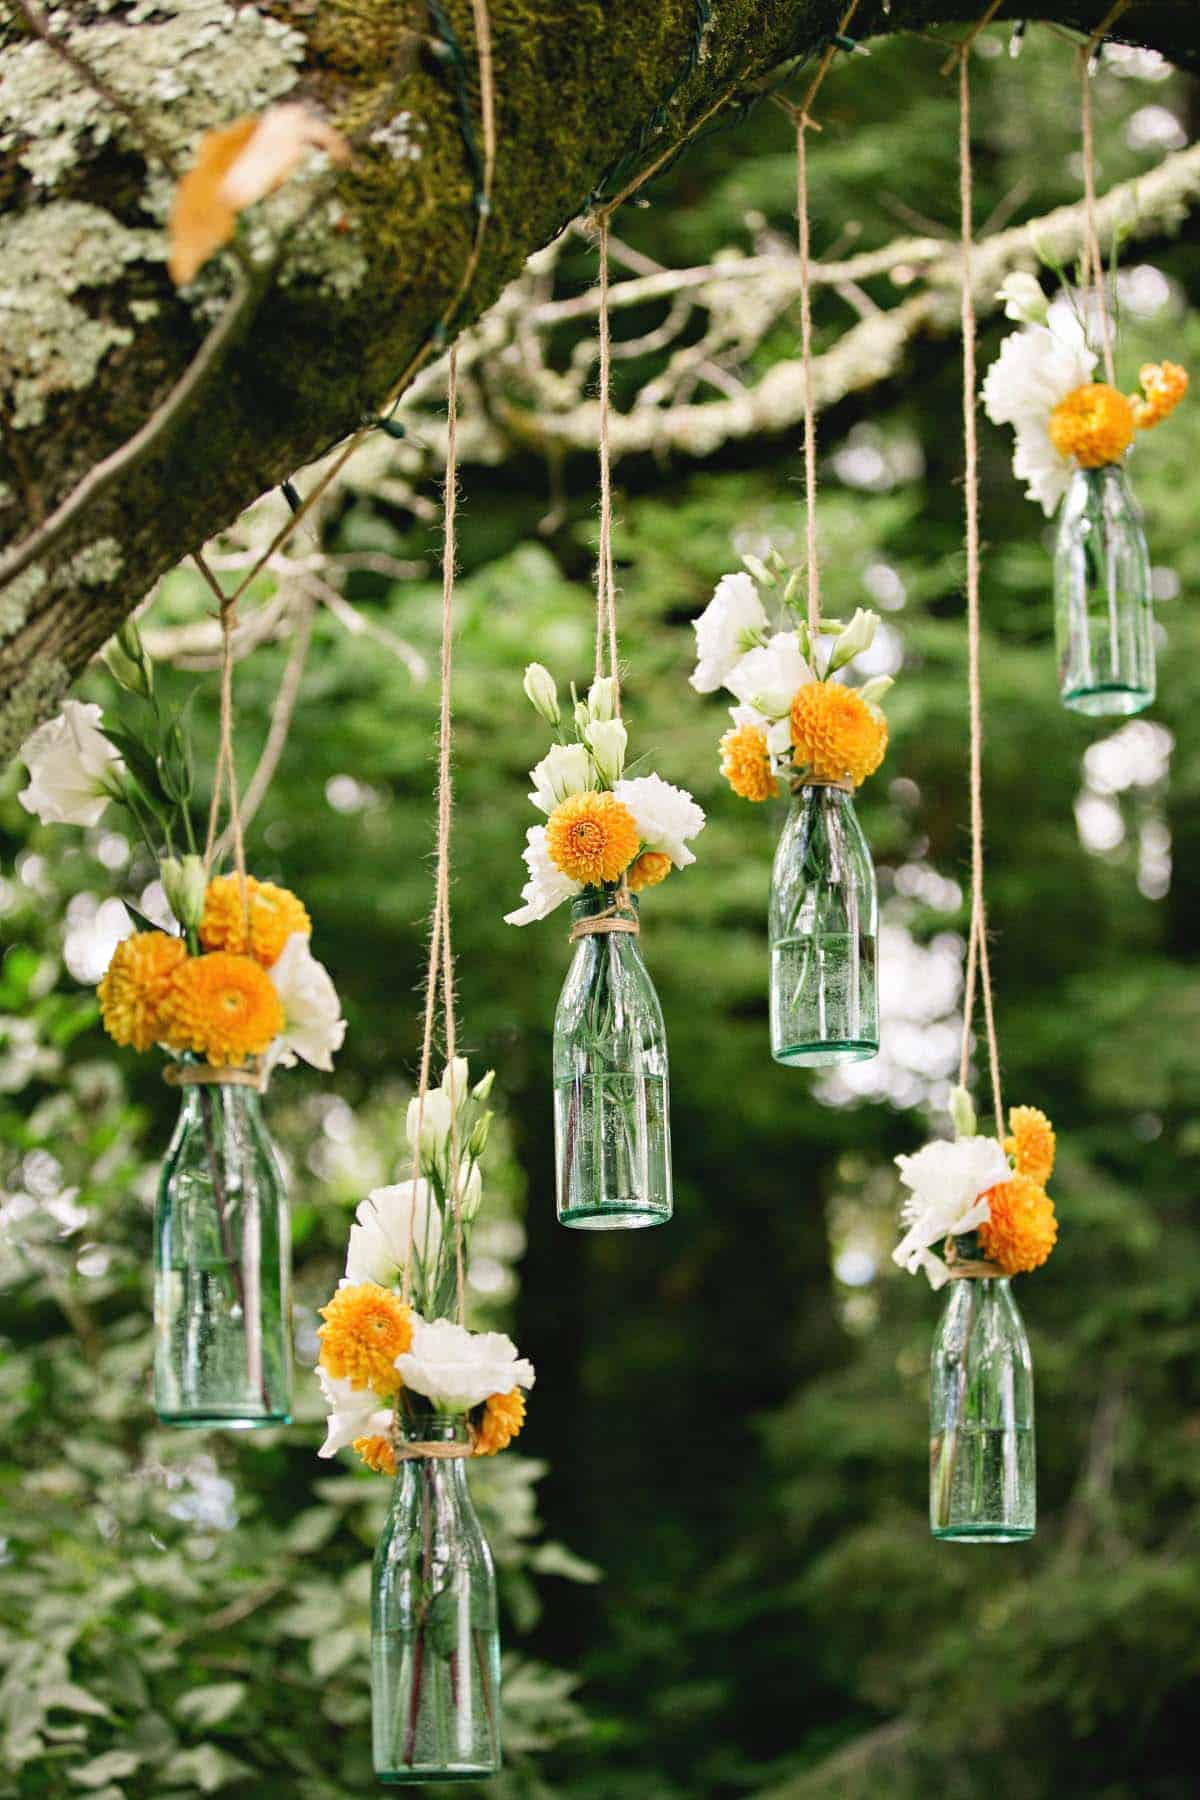 summer-garden-party-idea-hanging-flowers